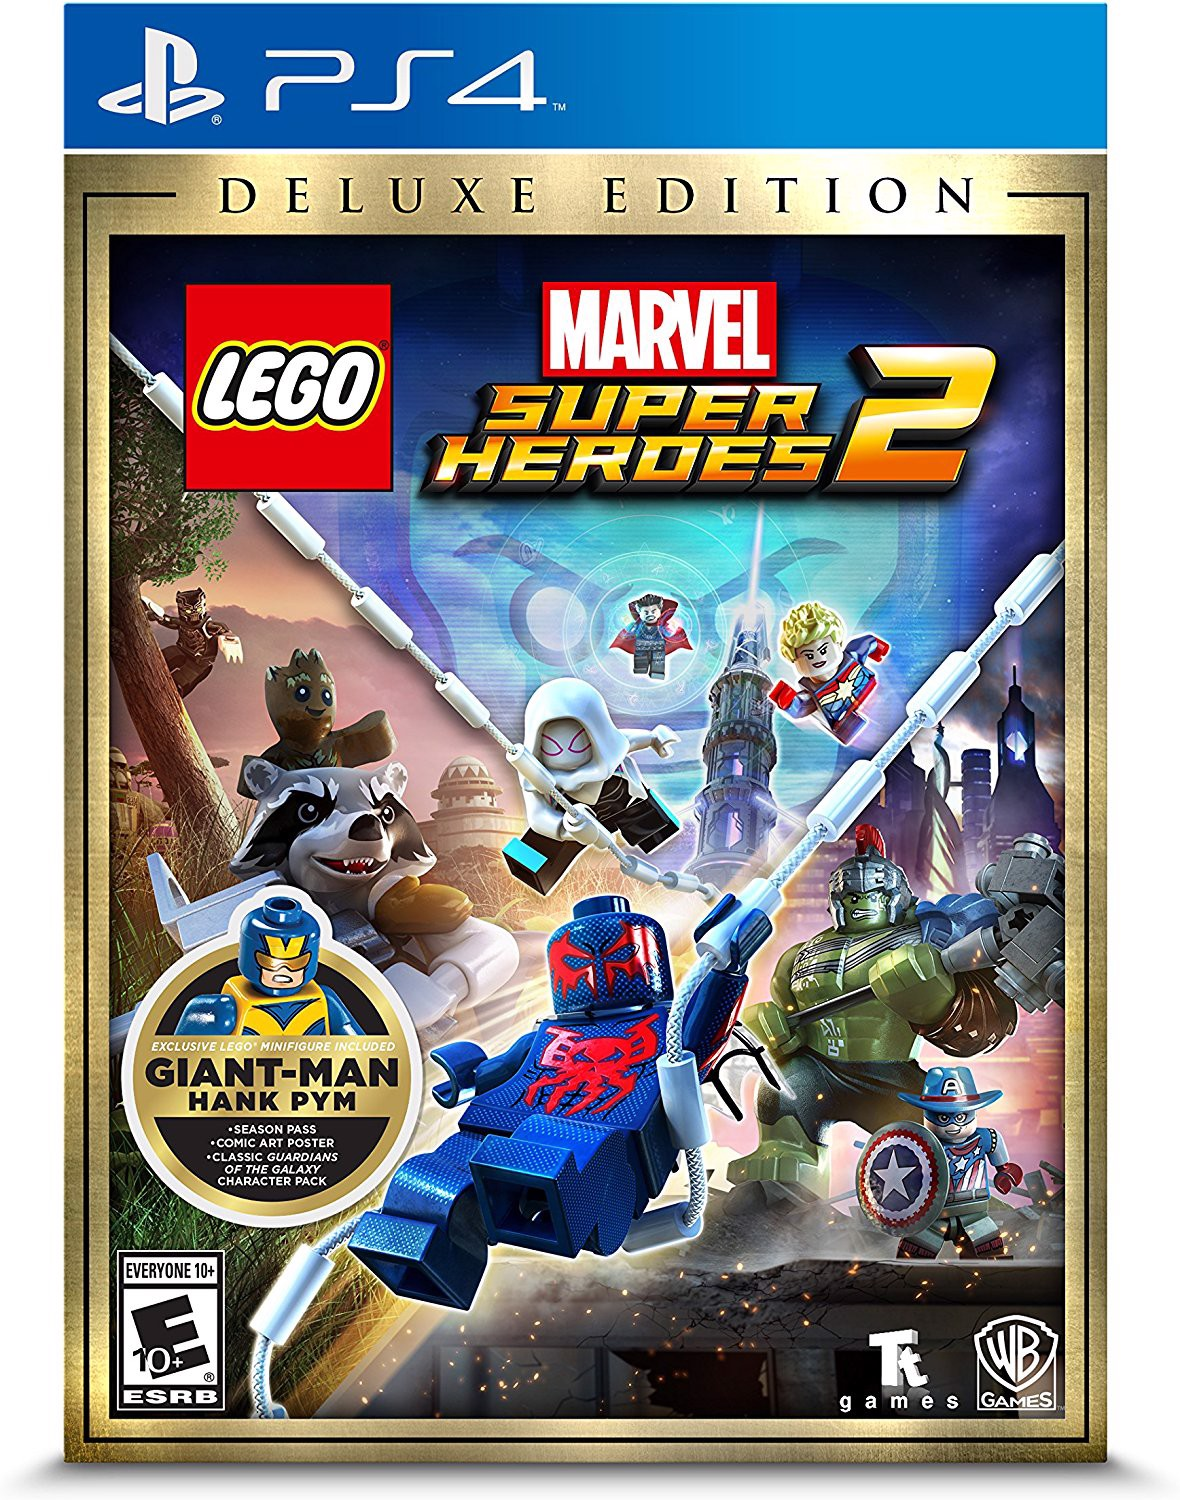 522 - LEGO Marvel Super Heroes 2 Deluxe Edition